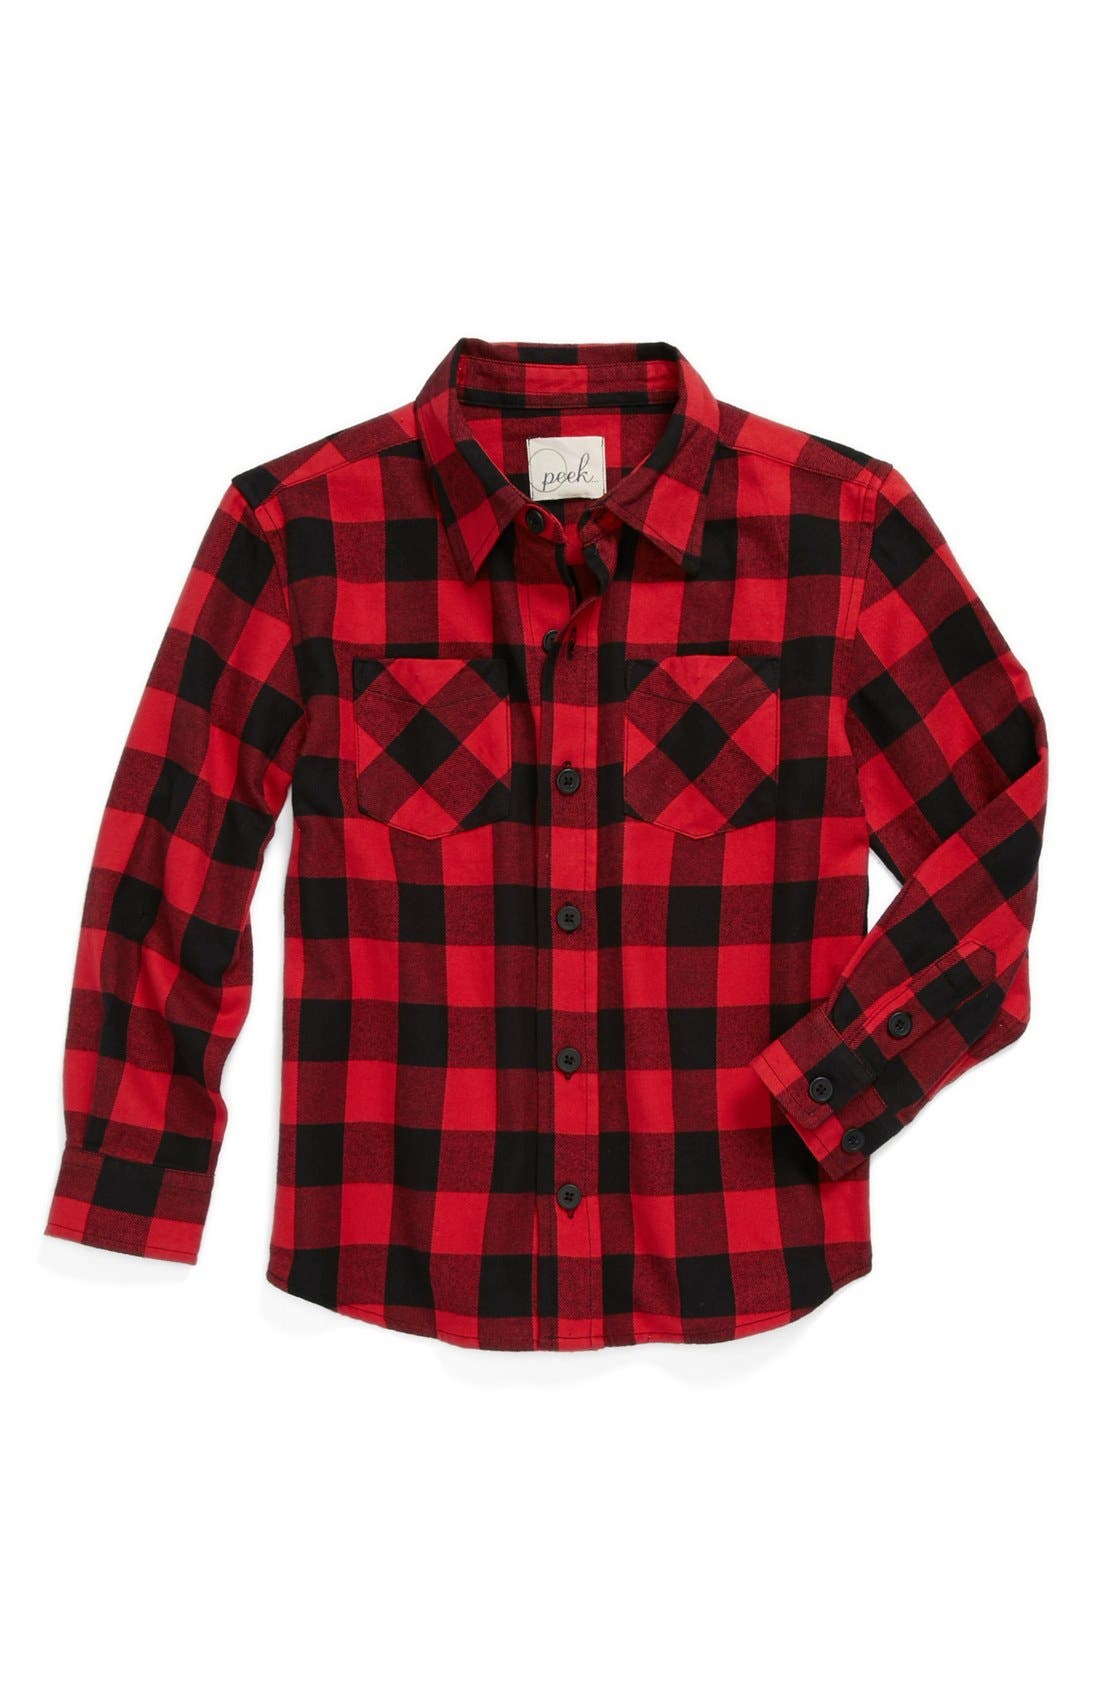 Alternate Image 1 Selected - Peek 'Buffalo' Plaid Shirt (Toddler Boys, Little Boys & Big Boys)